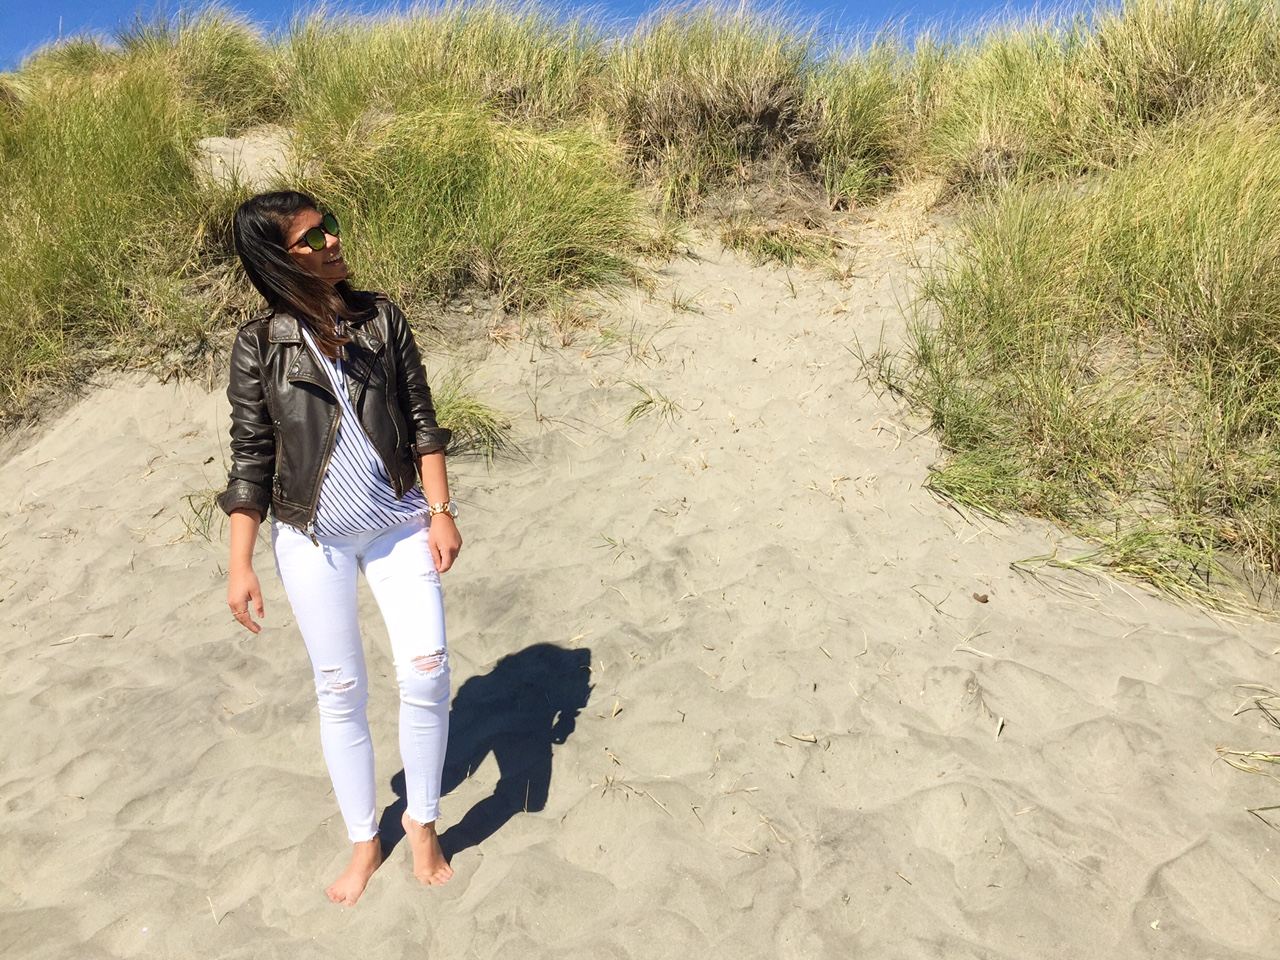 ootd, fashion blogger, fblogger, portland blogger, style blogger, white jeans, wonder wall wednesday, black booties, black and white chiffon blouse, astoria beach, lewis and clark, thirty bucks